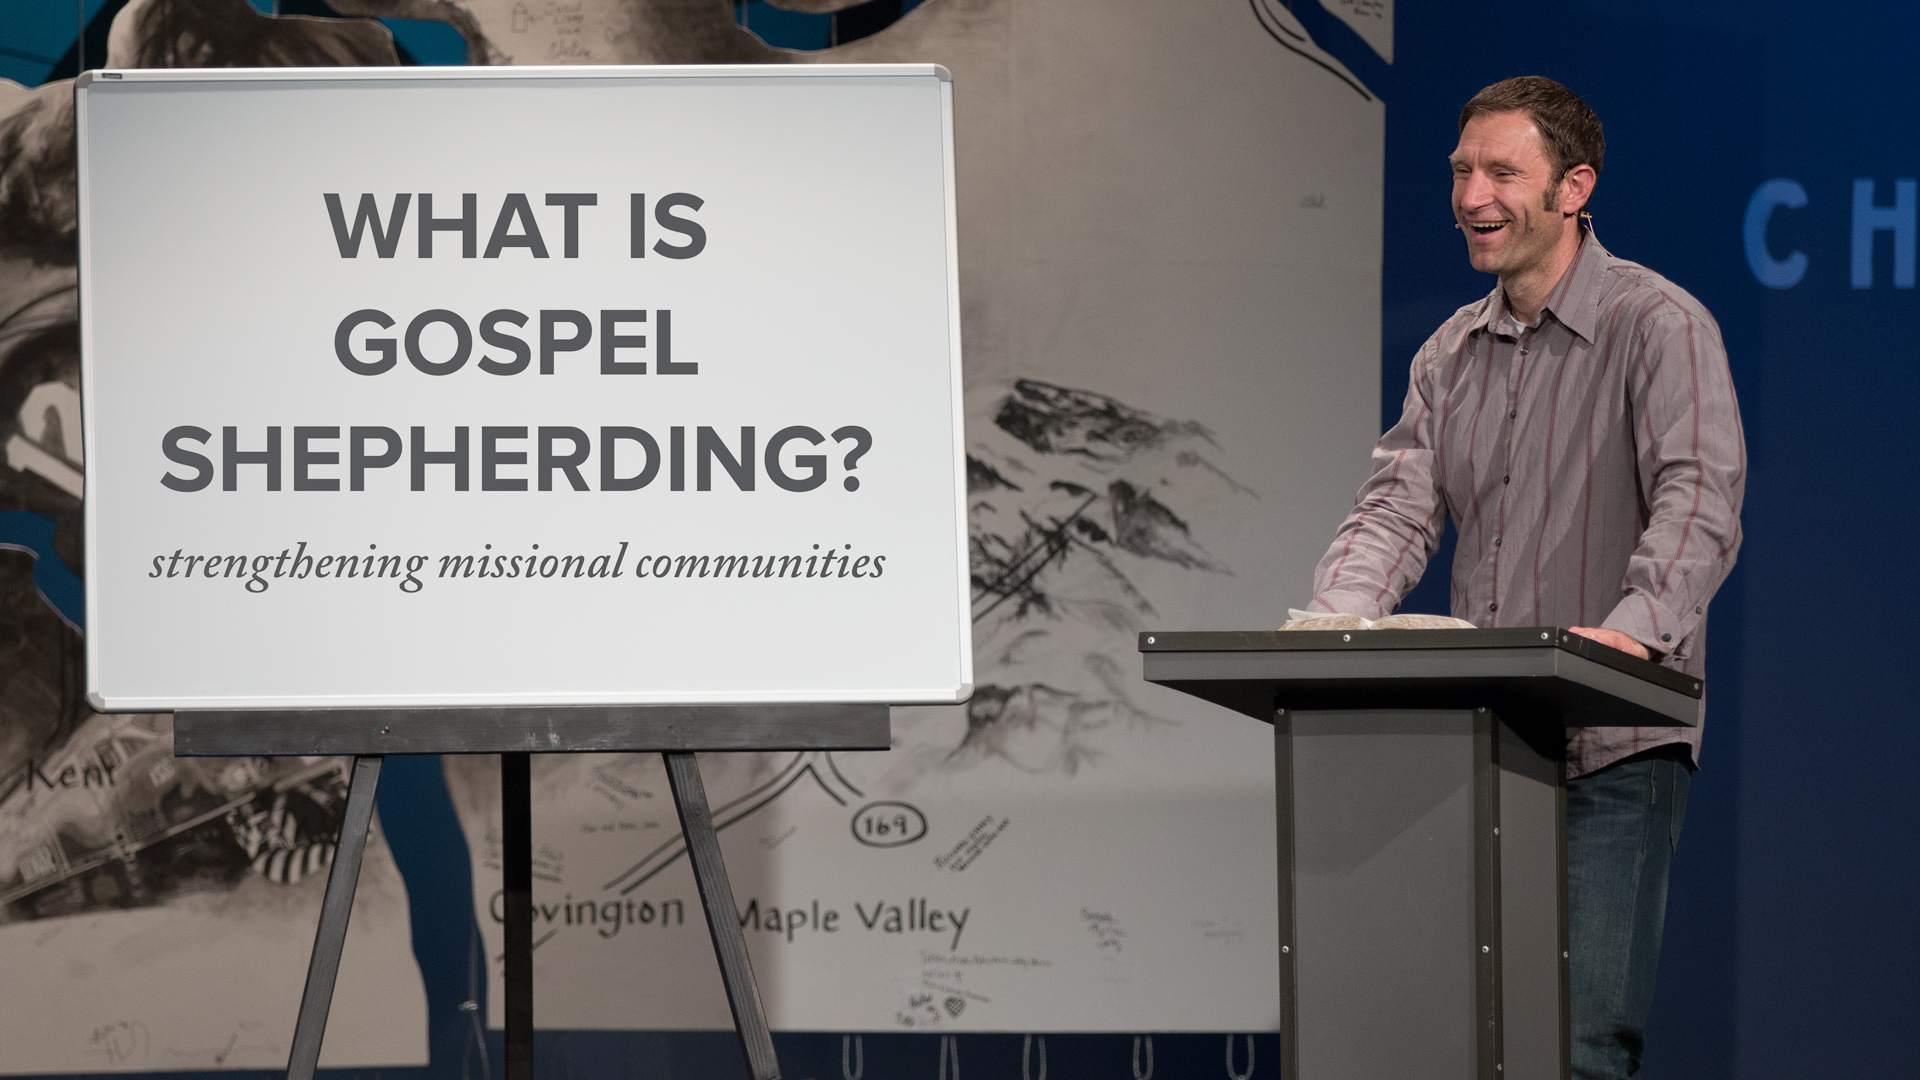 What is Gospel Shepherding?